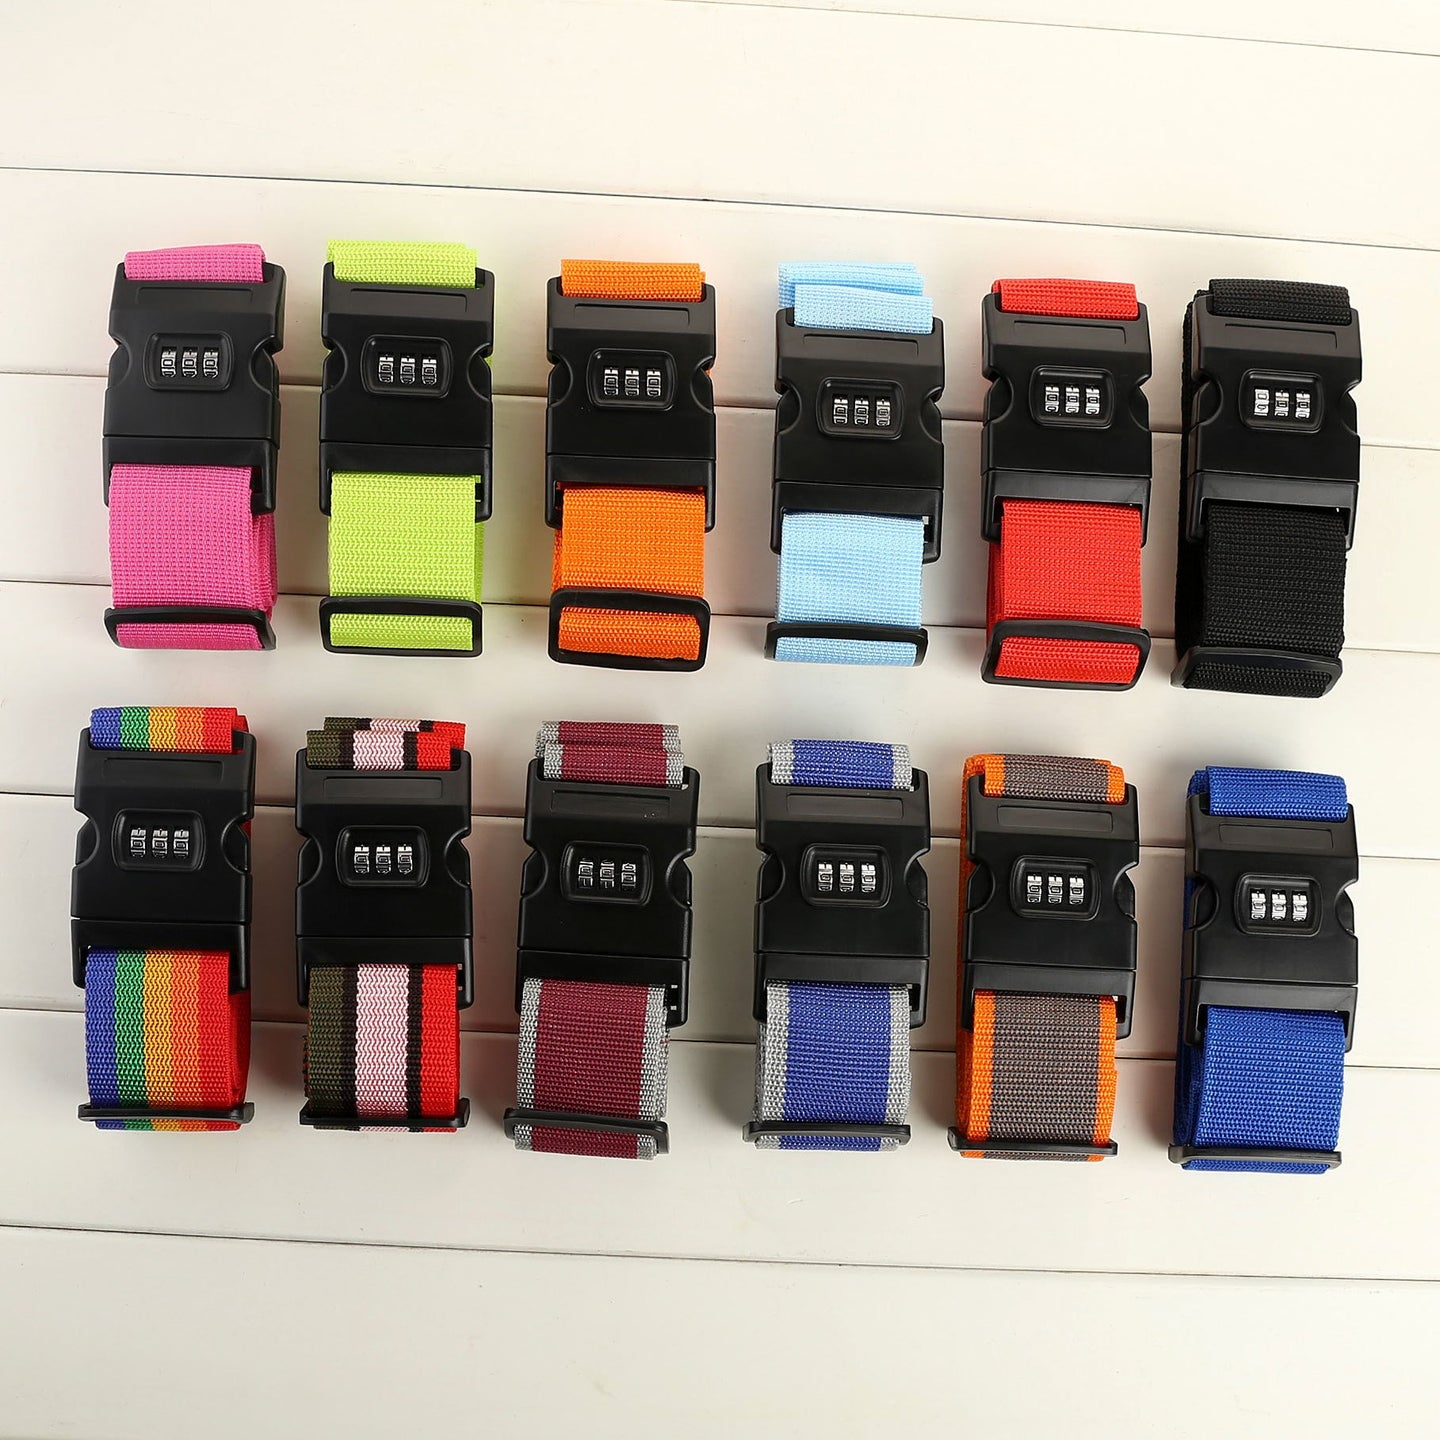 Corporate Gifts - Rainbow Code Lock Customized Packing Belt